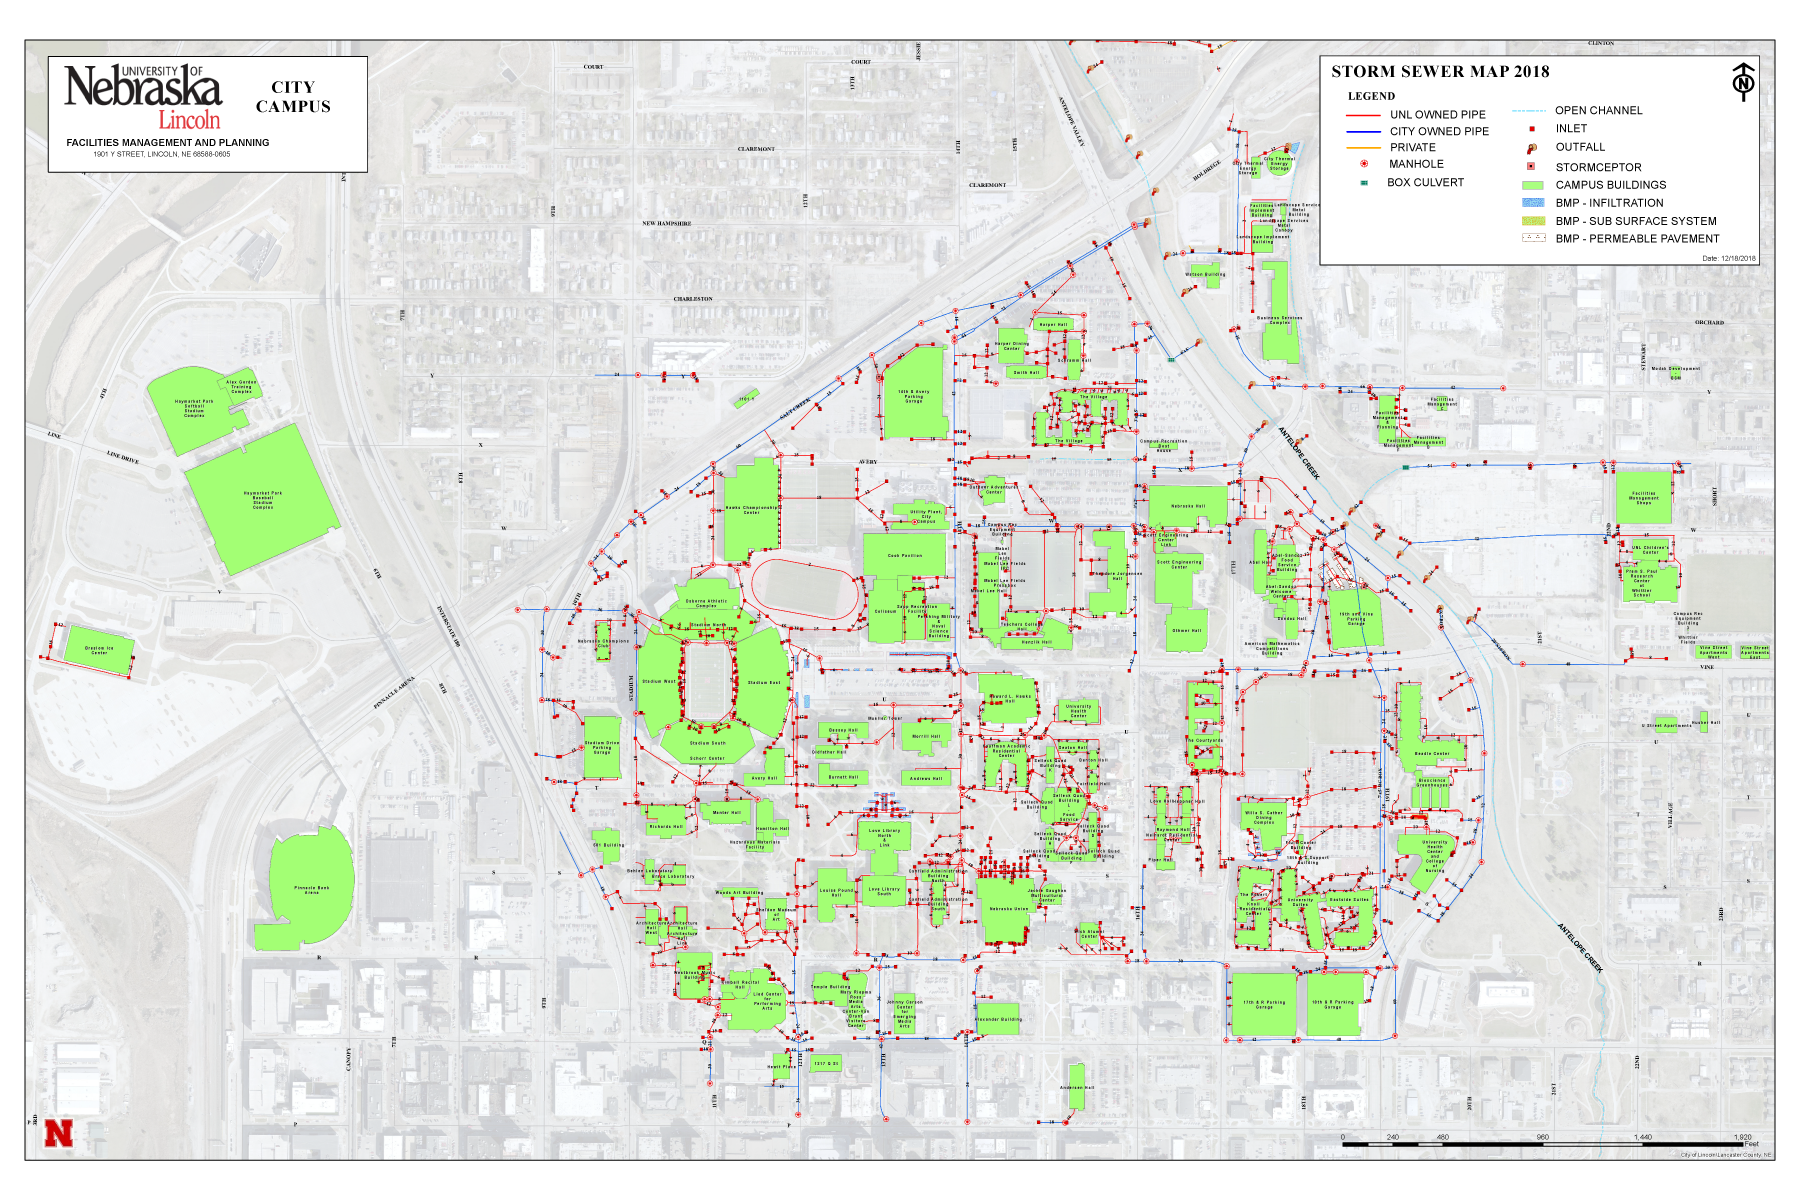 City Campus Storm Sewer Map